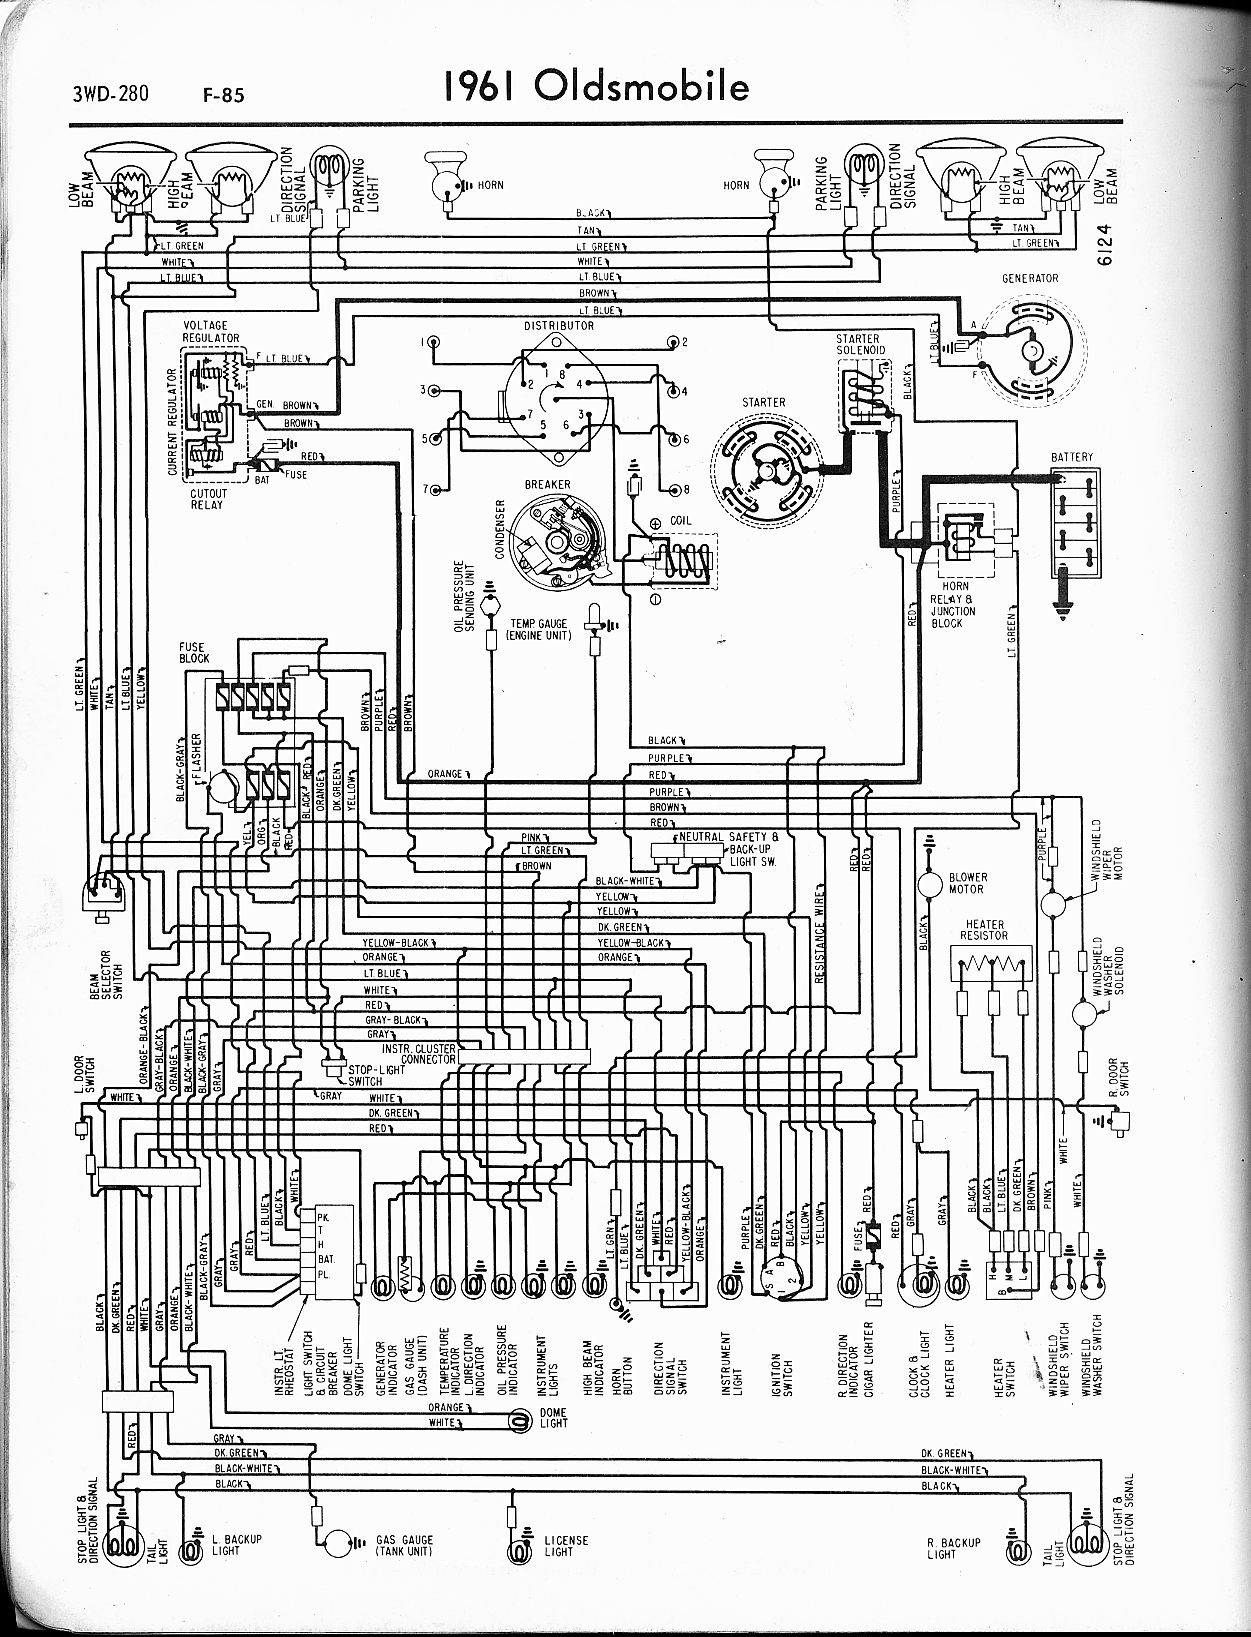 1972 oldsmobile cutlass supreme wiring diagrams oldsmobile cutlass supreme wiring diagram pictures